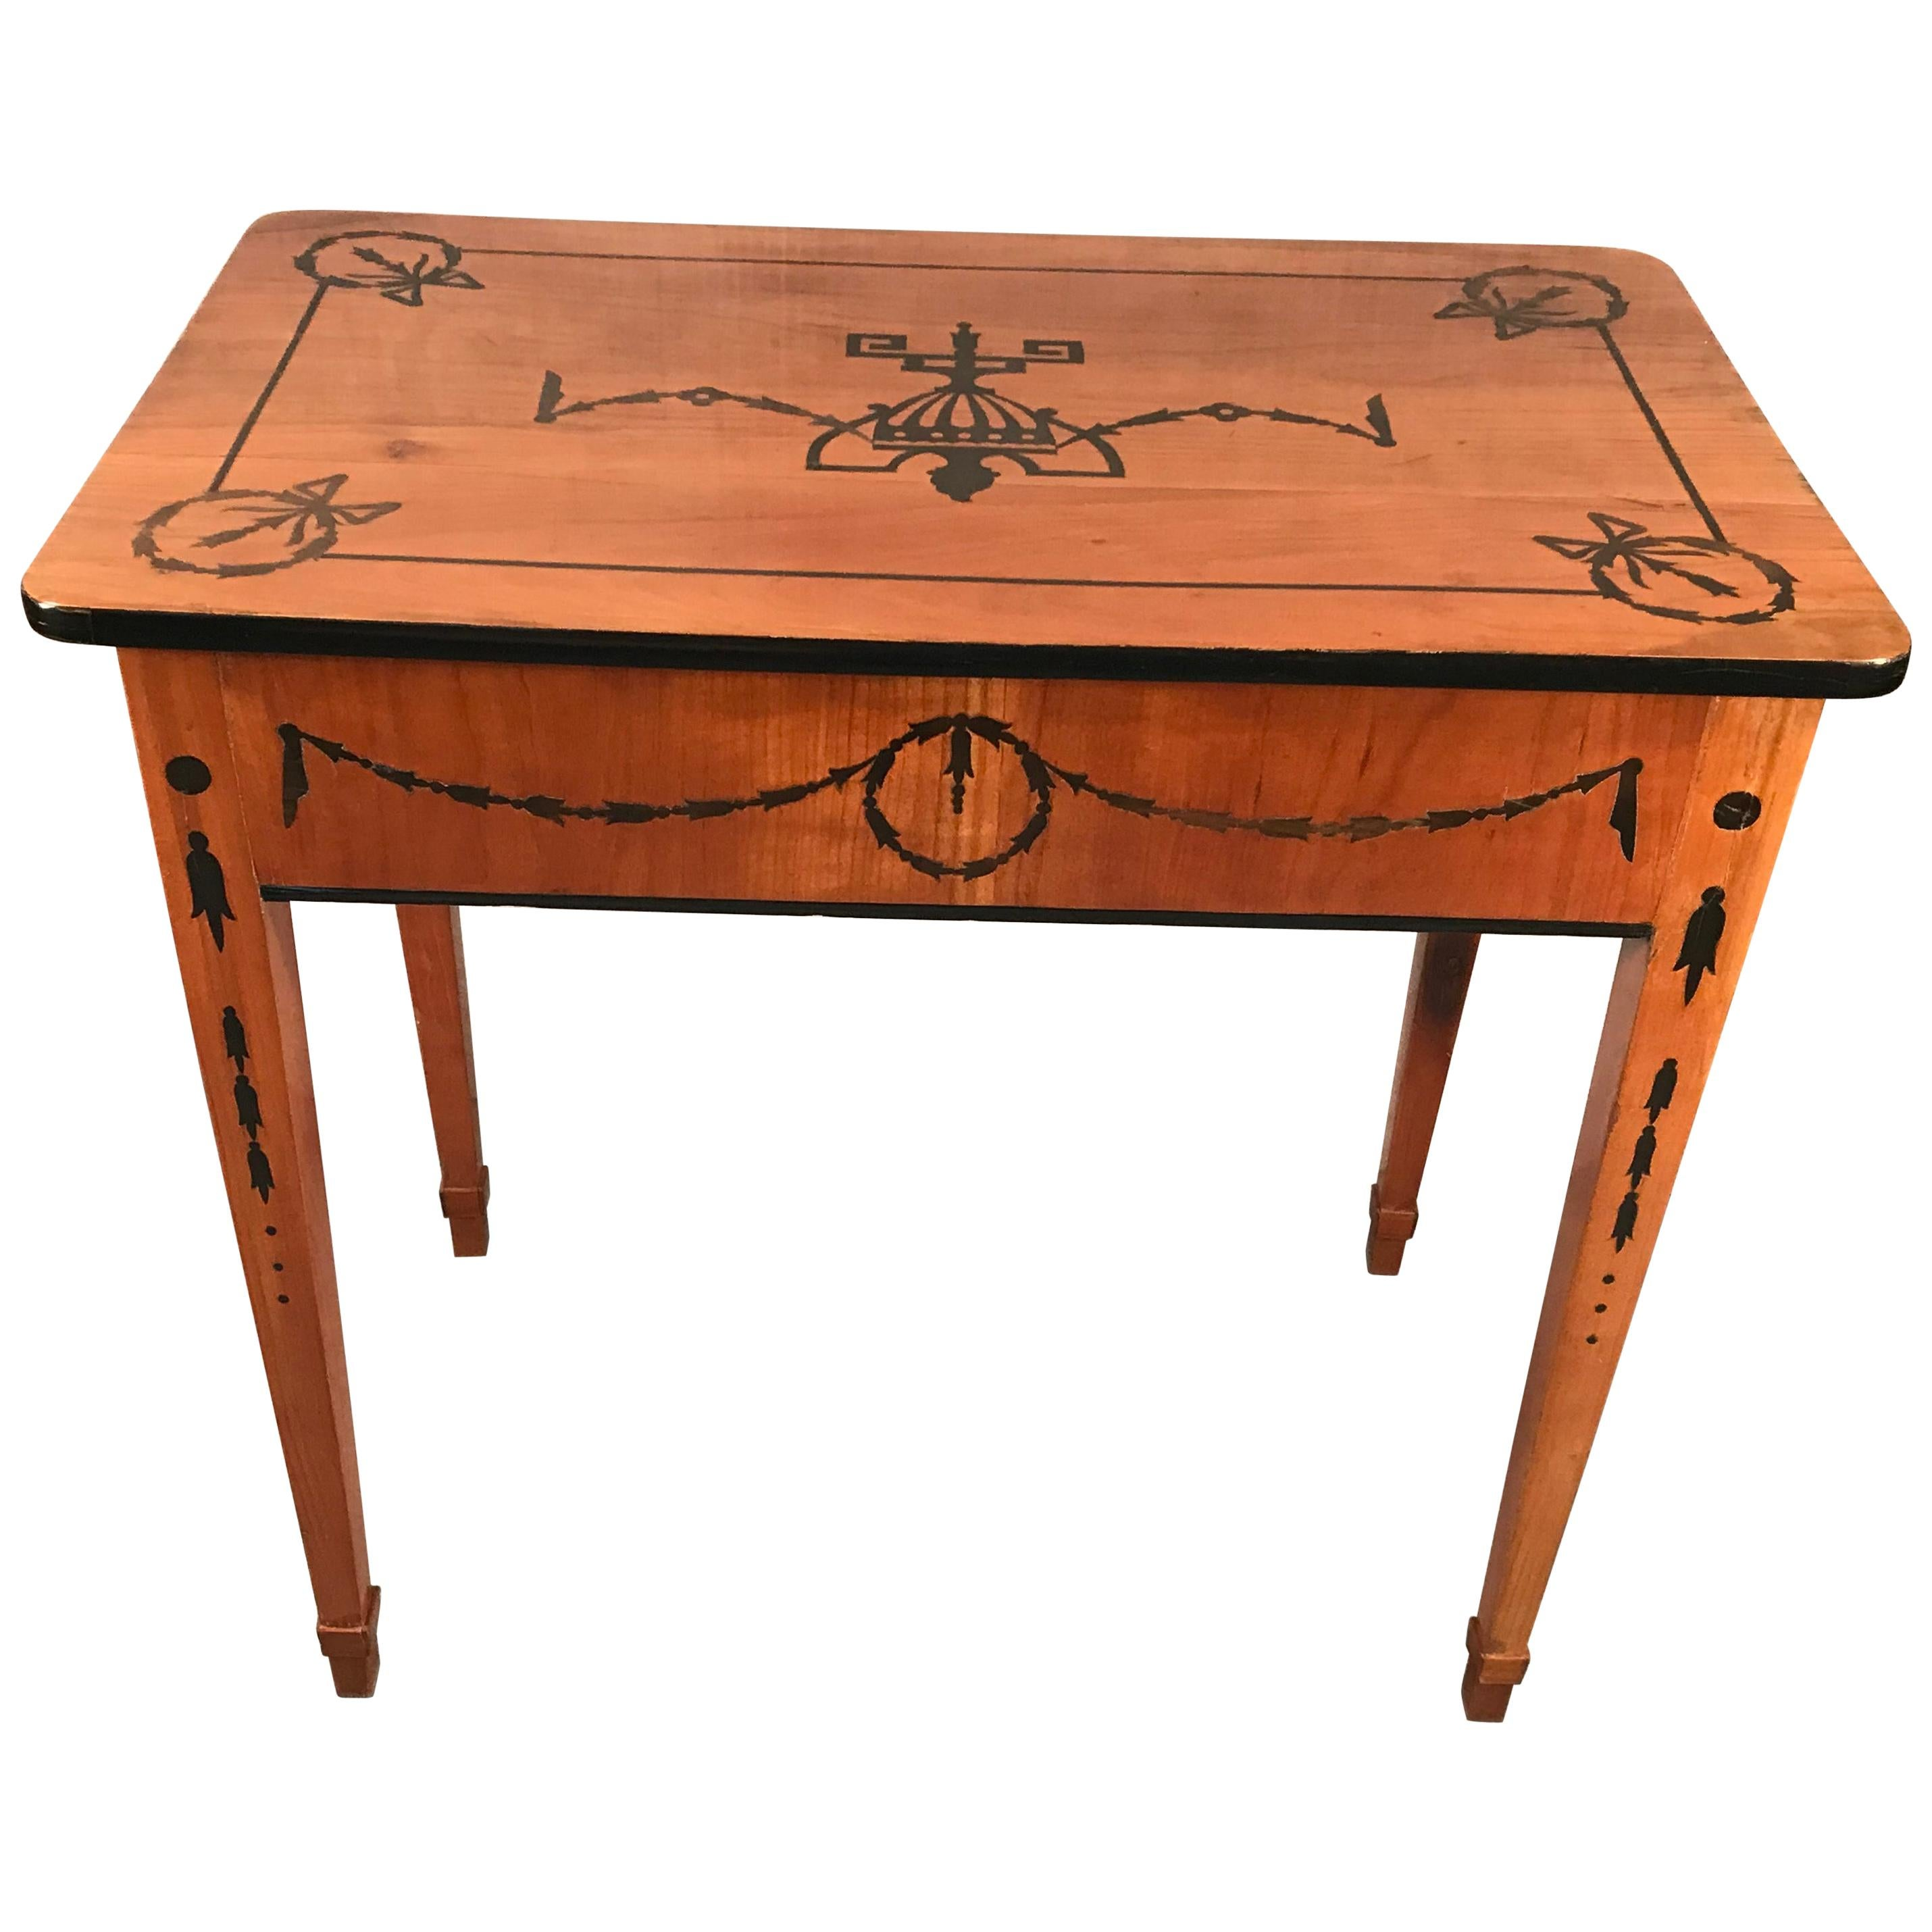 Louis XVI Side Table or Small Desk, Germany, 1780-1800